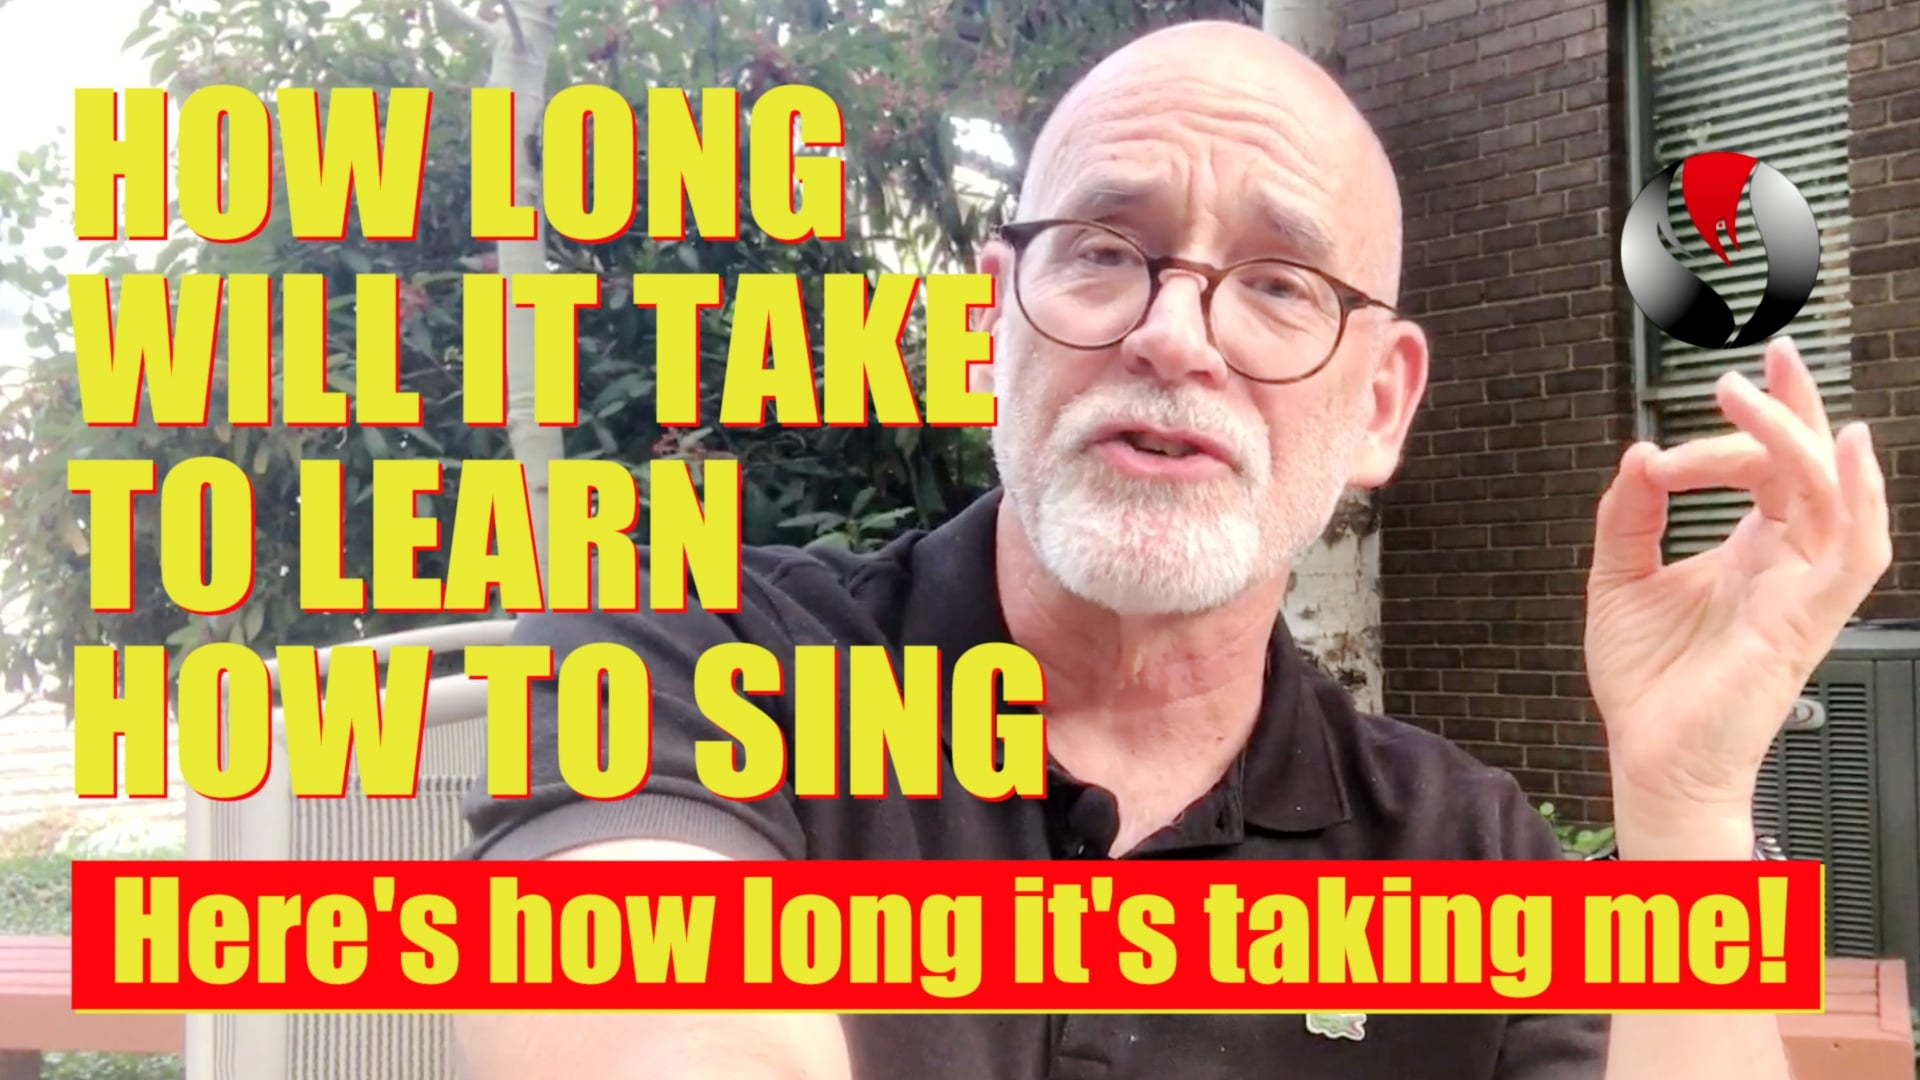 How Long Will It Take To Learn How To Sing – HERE'S HOW LONG IT'S TAKING ME!